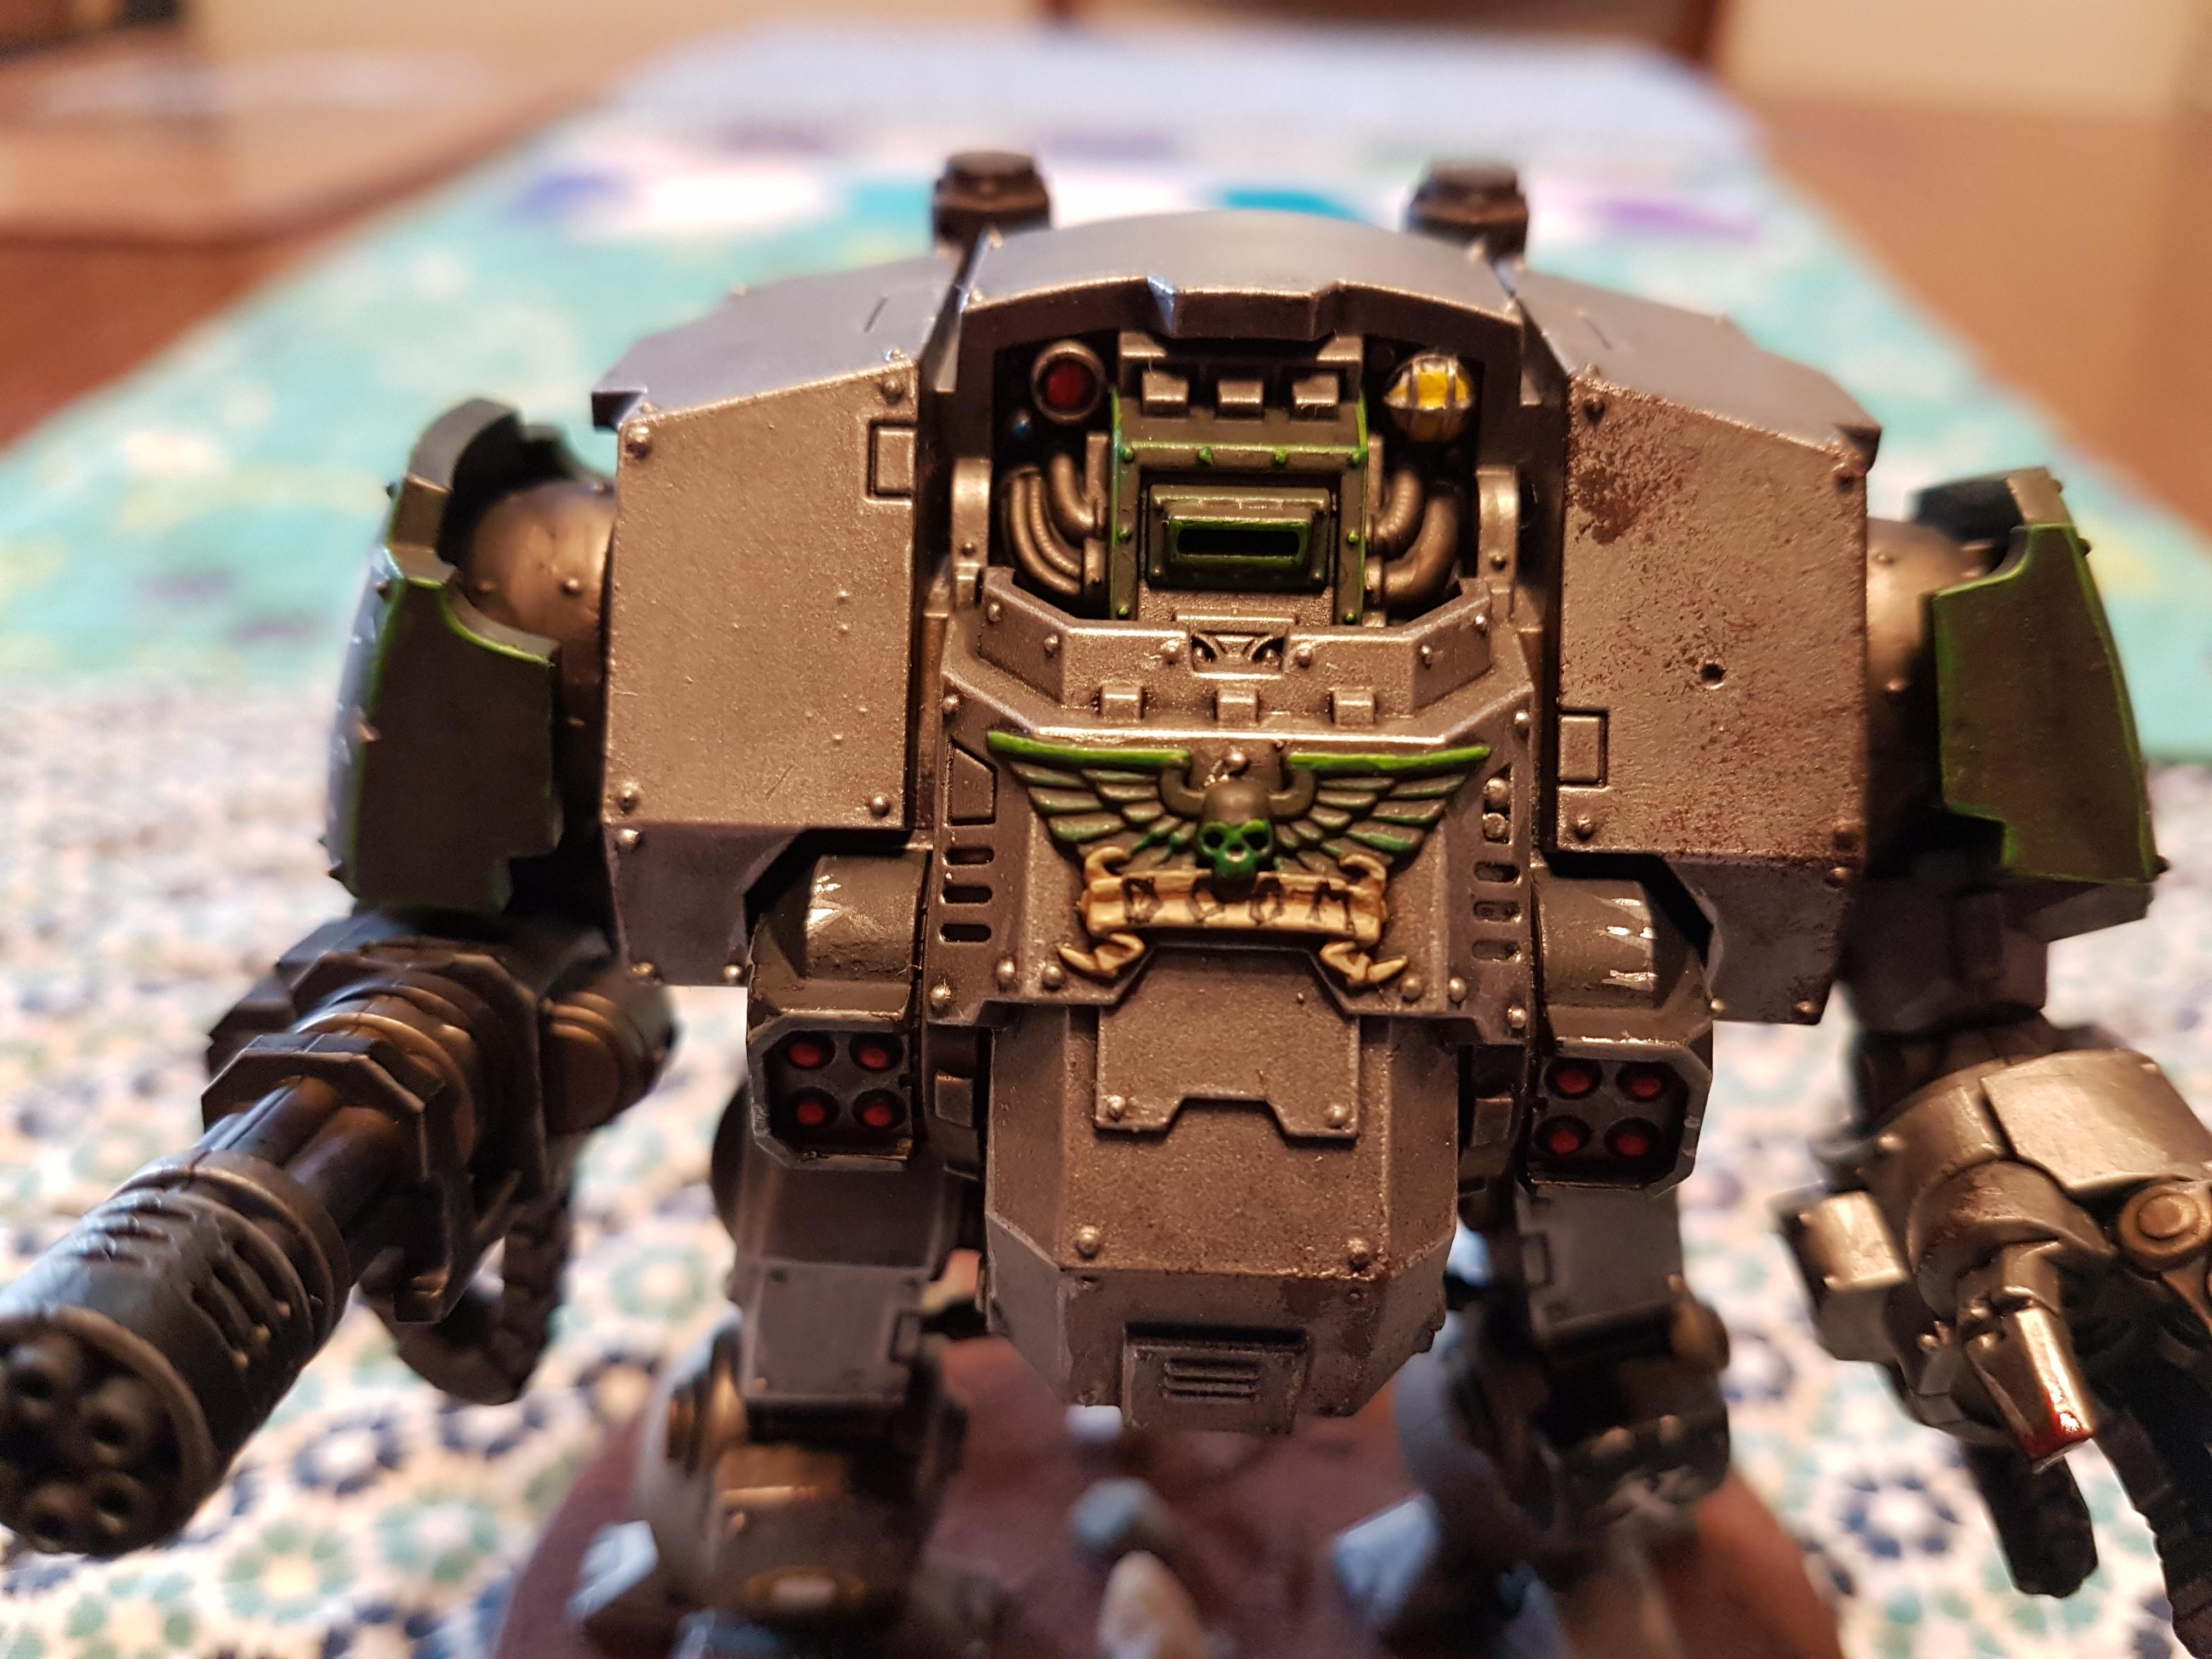 Black, Doom, Doom Legion, Dreadnought, Fragstrom Grenade Launcher, Green, Heavy Flammer, Heavy Onslaught Catling Cannon, Iron, Legion, Metal, Primaris, Redemptor, Redemptor Dreadnought, Redmptor Fist, Silver, Space Marines